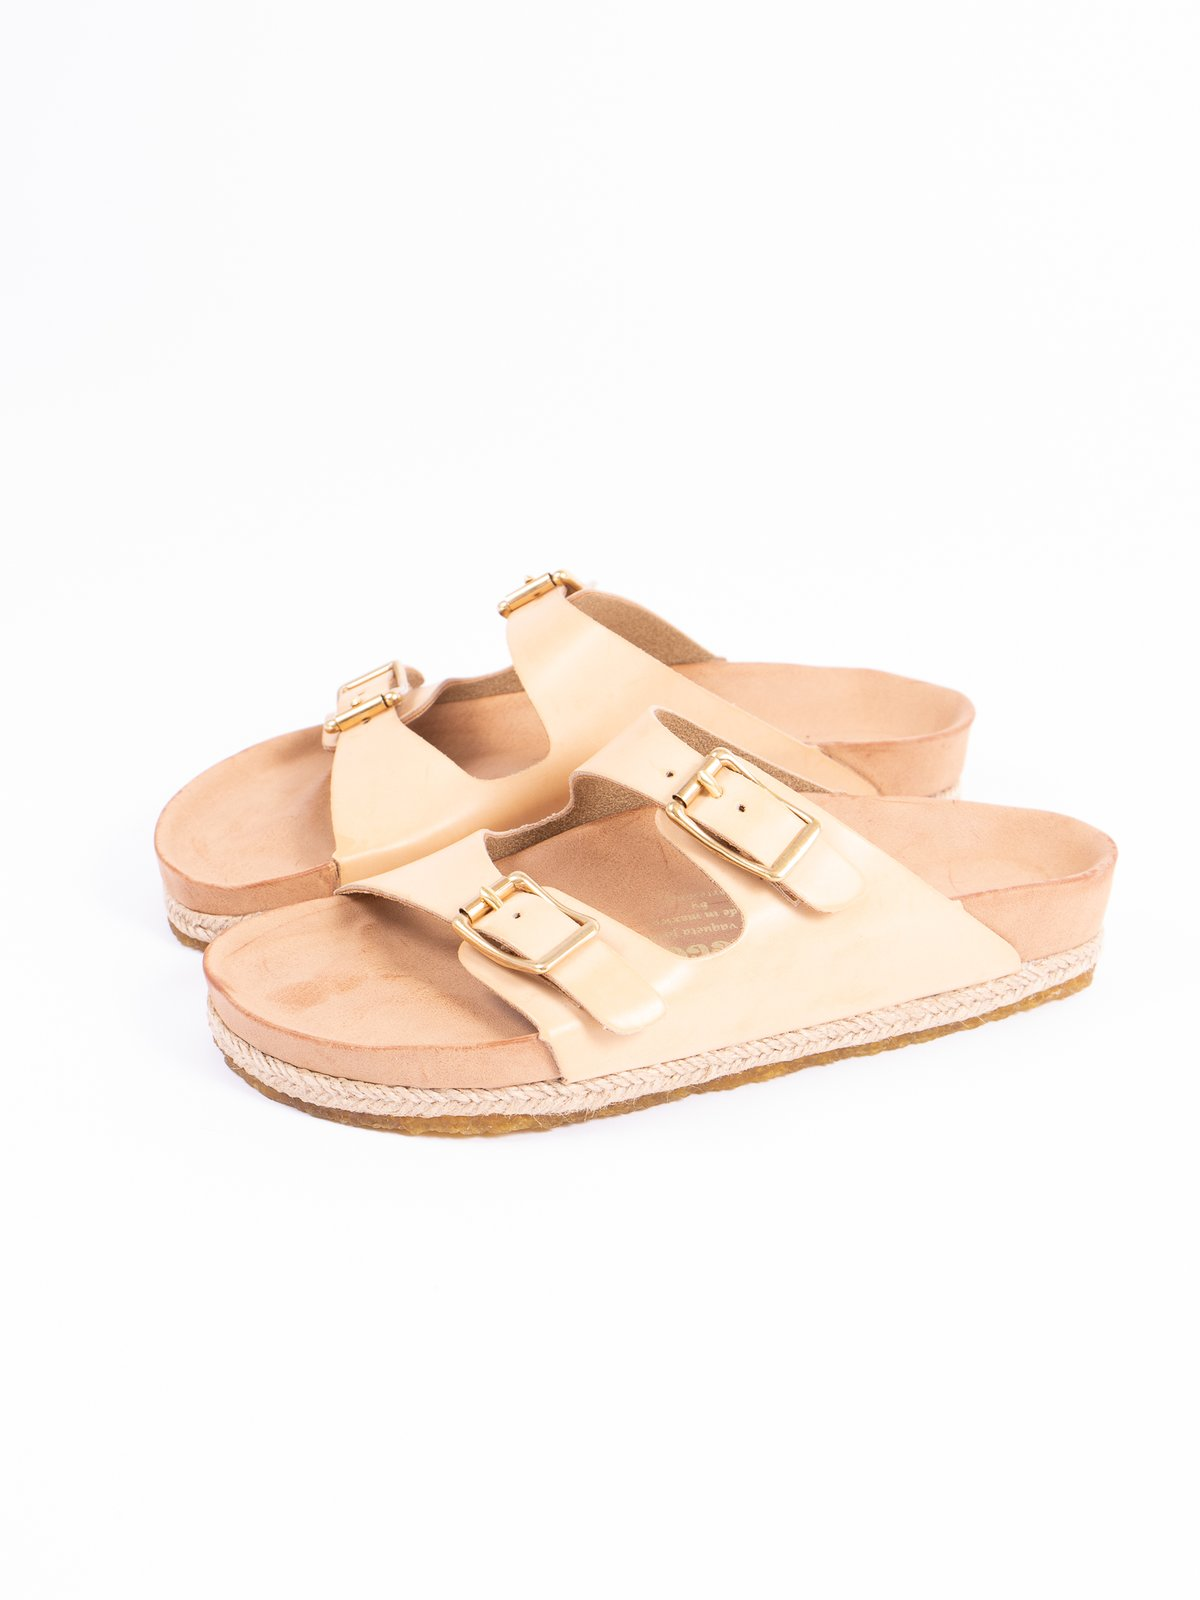 Natural Arizonian Sandal - Image 2